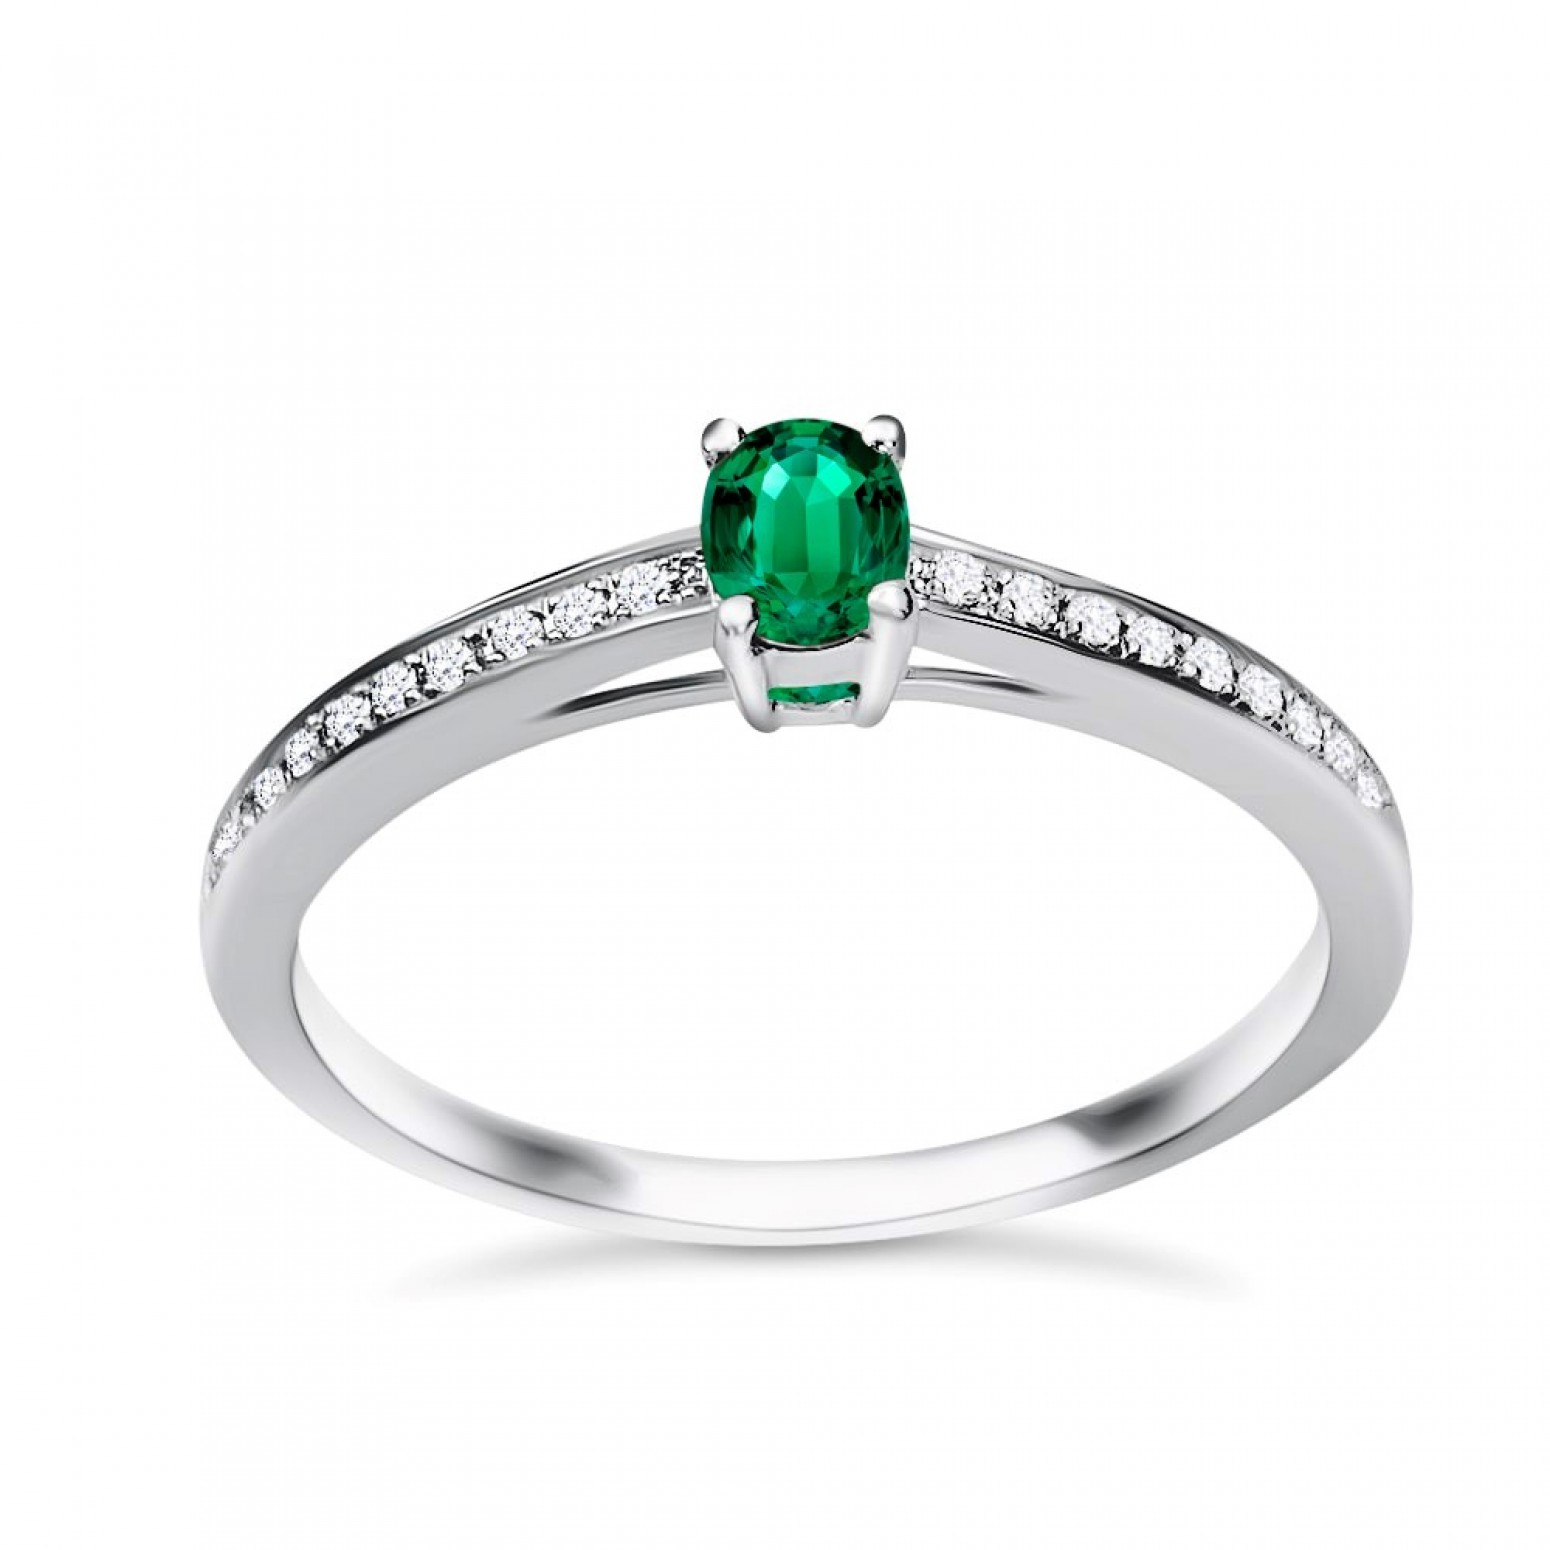 Solitaire ring 18K white gold with emerald 0.24ct and diamonds, VS1, G da3531 ENGAGEMENT RINGS Κοσμηματα - chrilia.gr